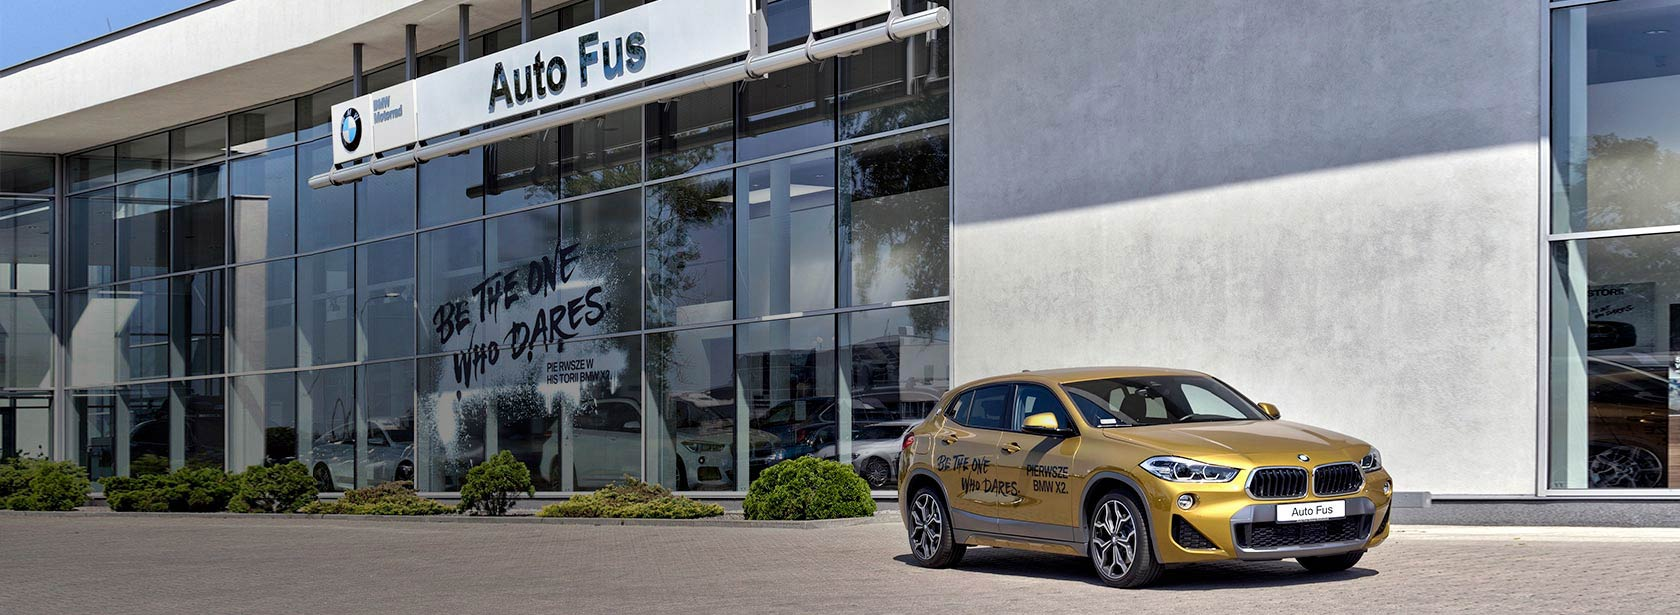 Salon Dealer BMW Auto Fus Group Białystok.